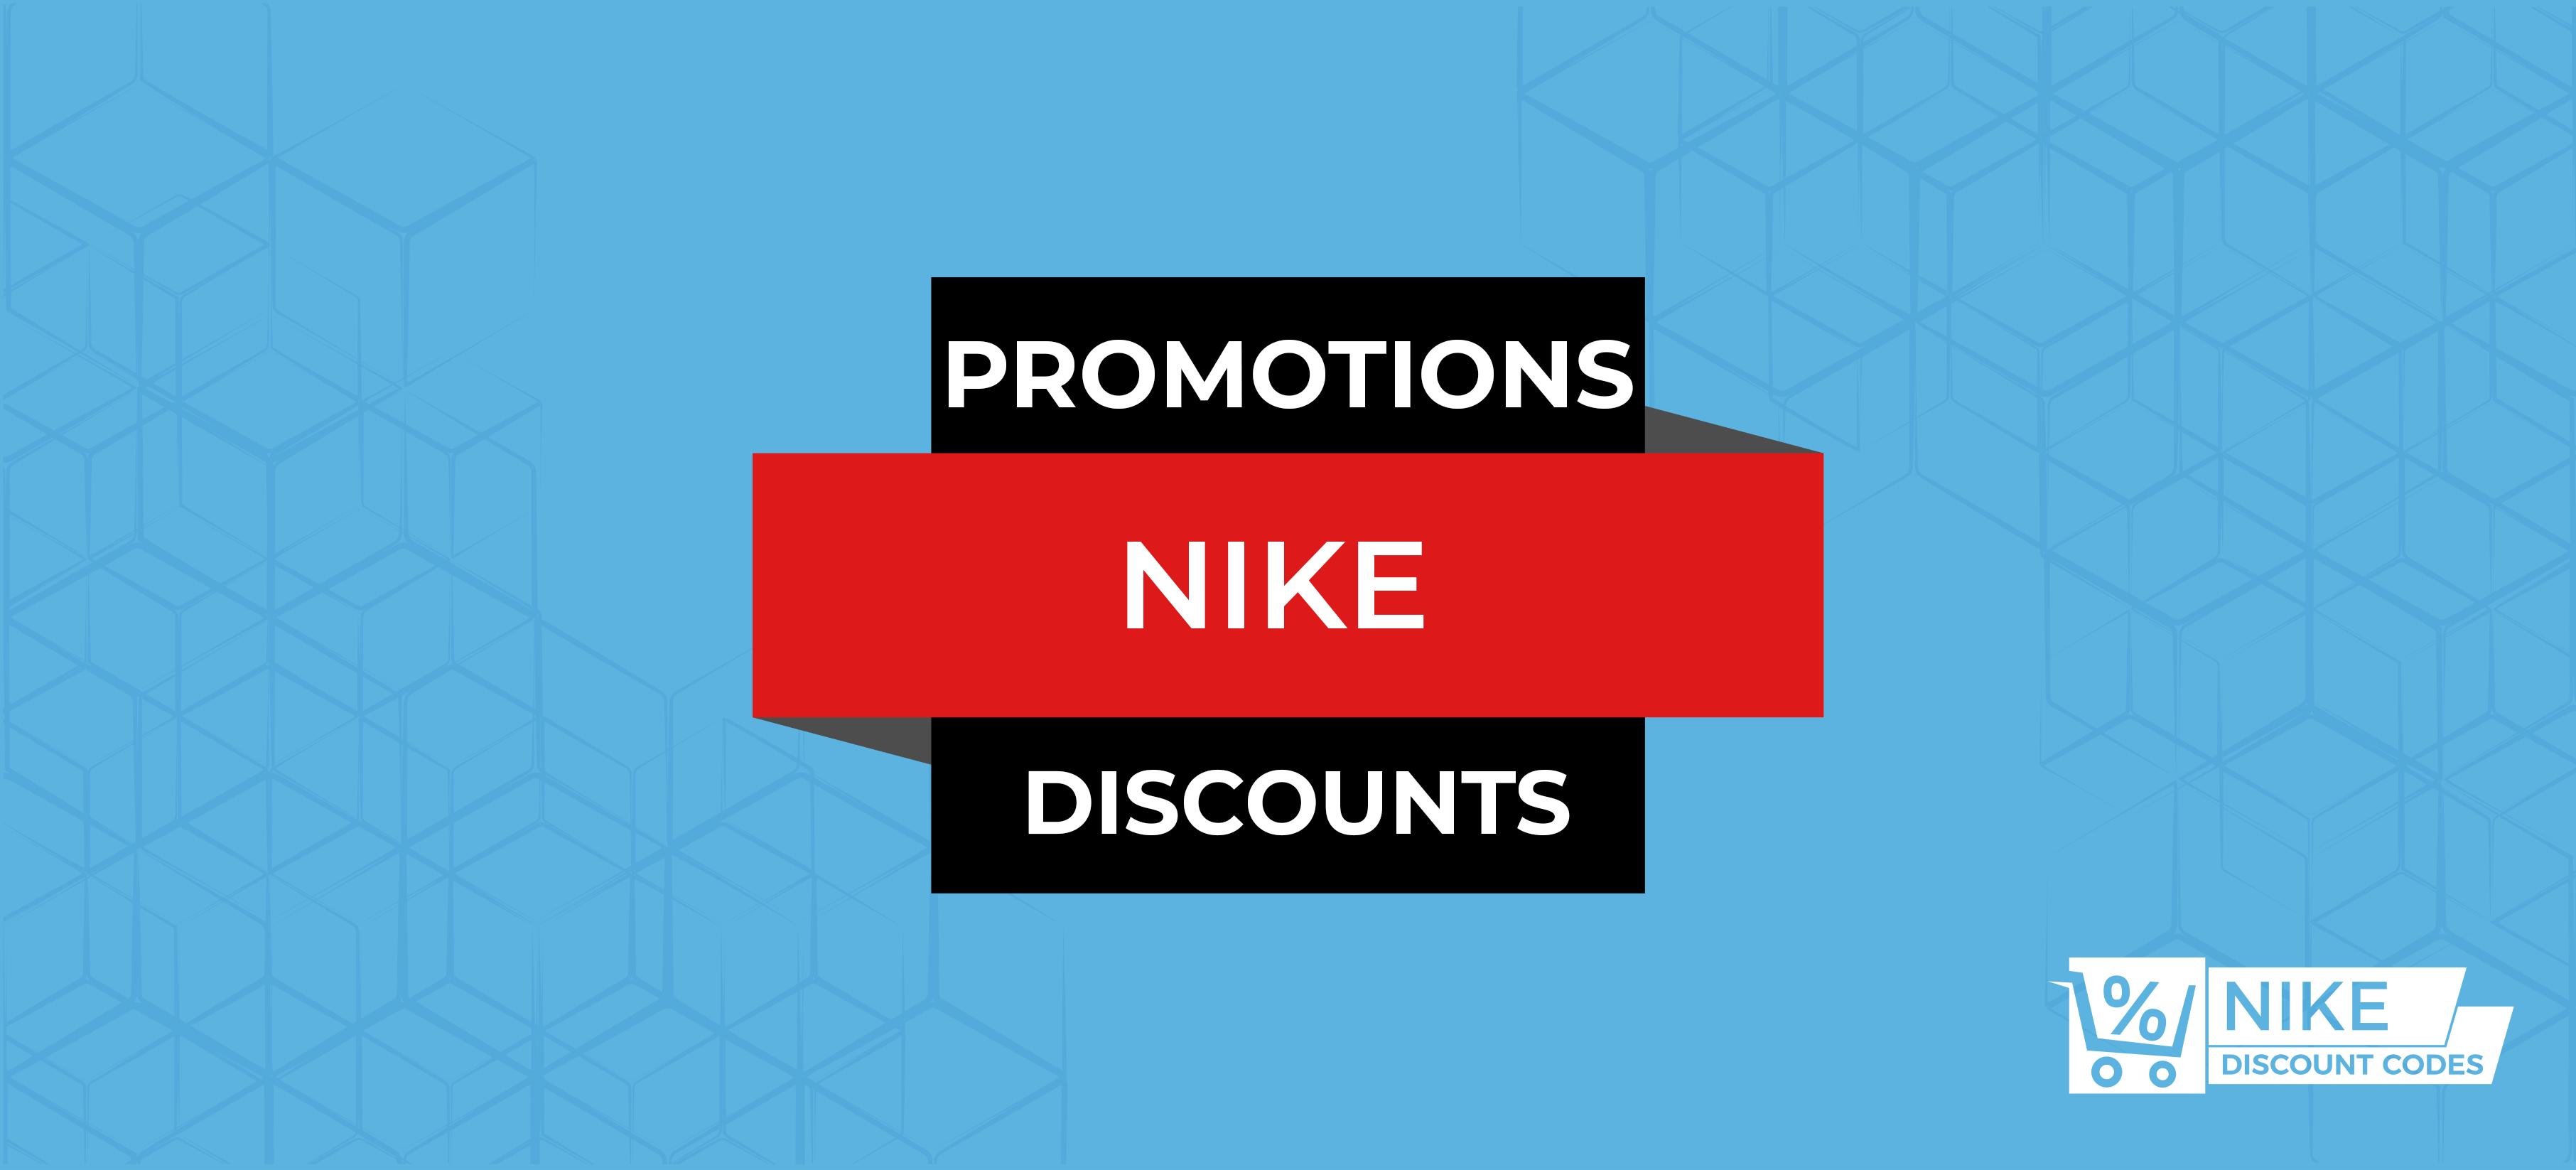 Nike Promotion Codes Banner